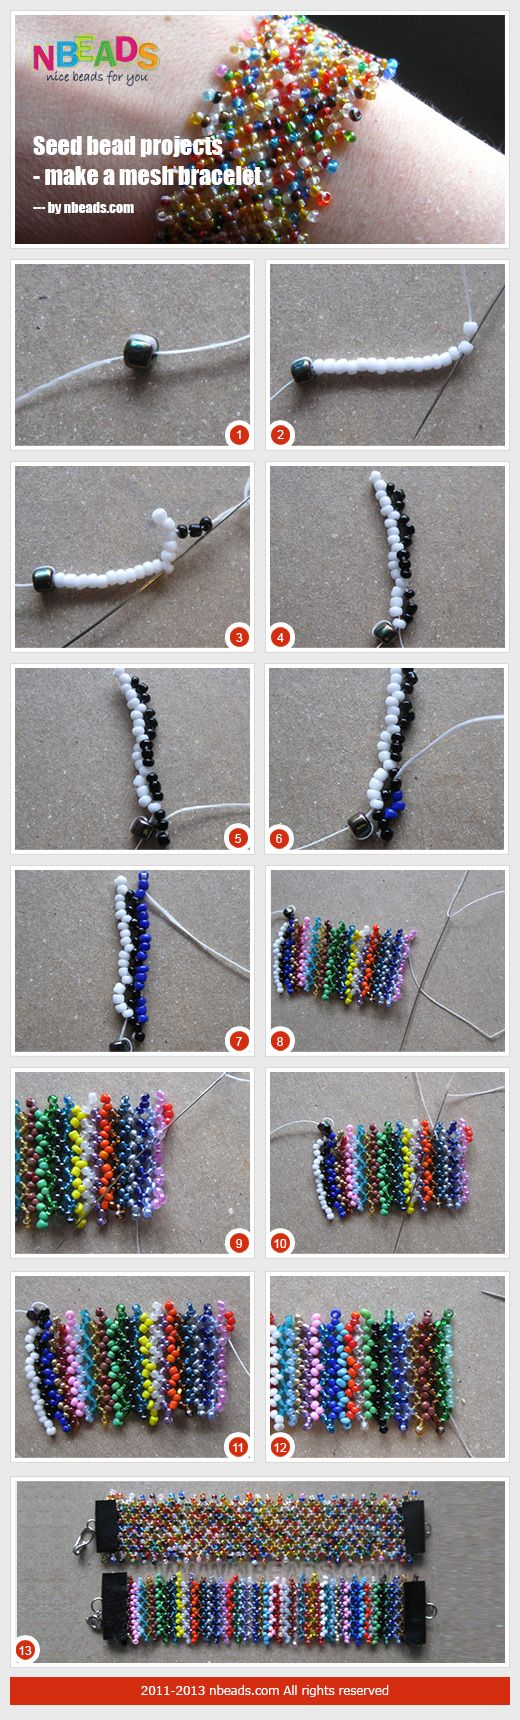 netted bracelet - {I should do this with my seed bead colour mixes that are otherwise unuseable}